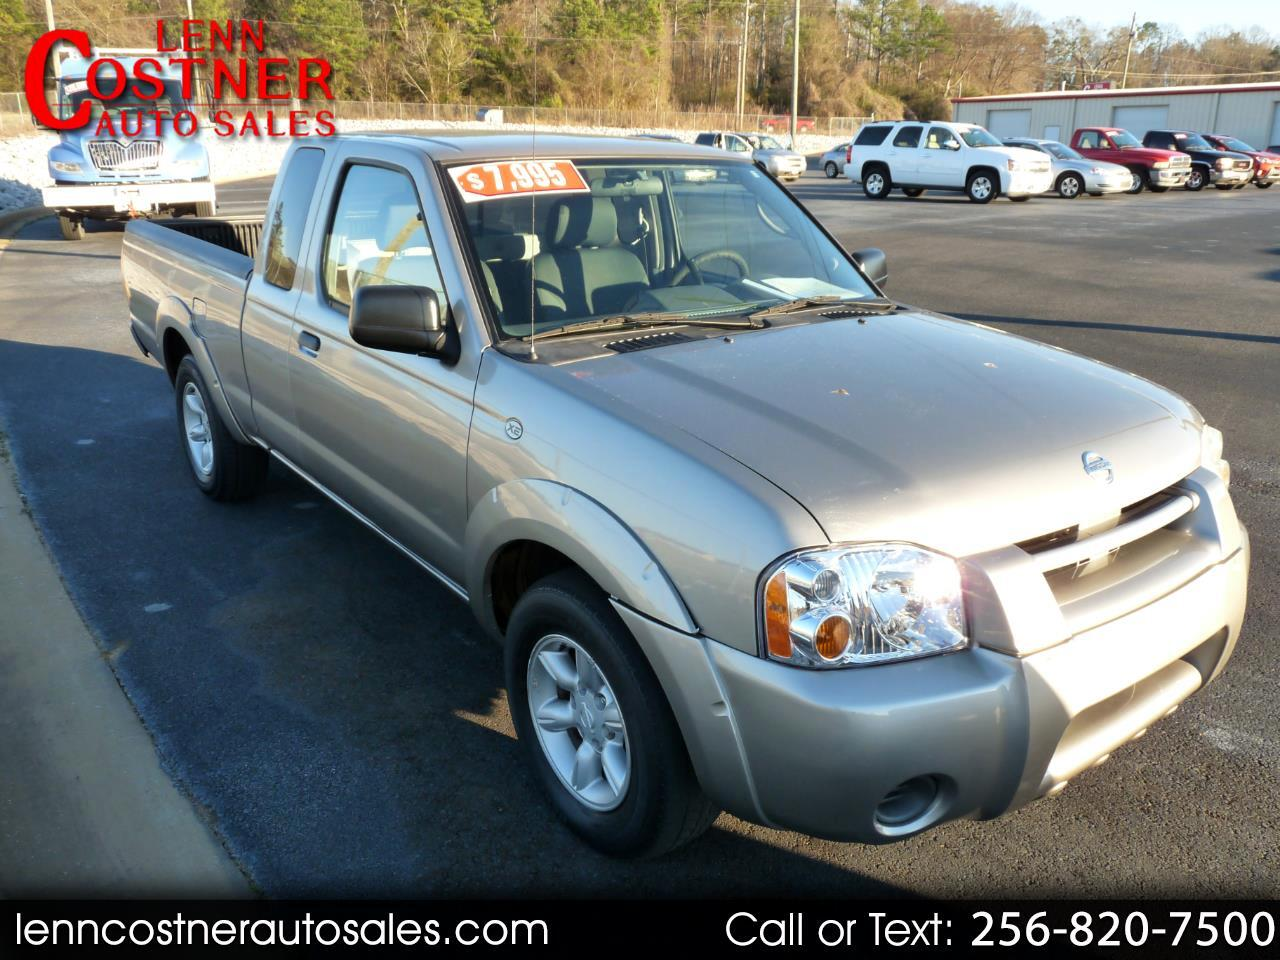 2004 Nissan Frontier 2WD XE King Cab I4 Auto